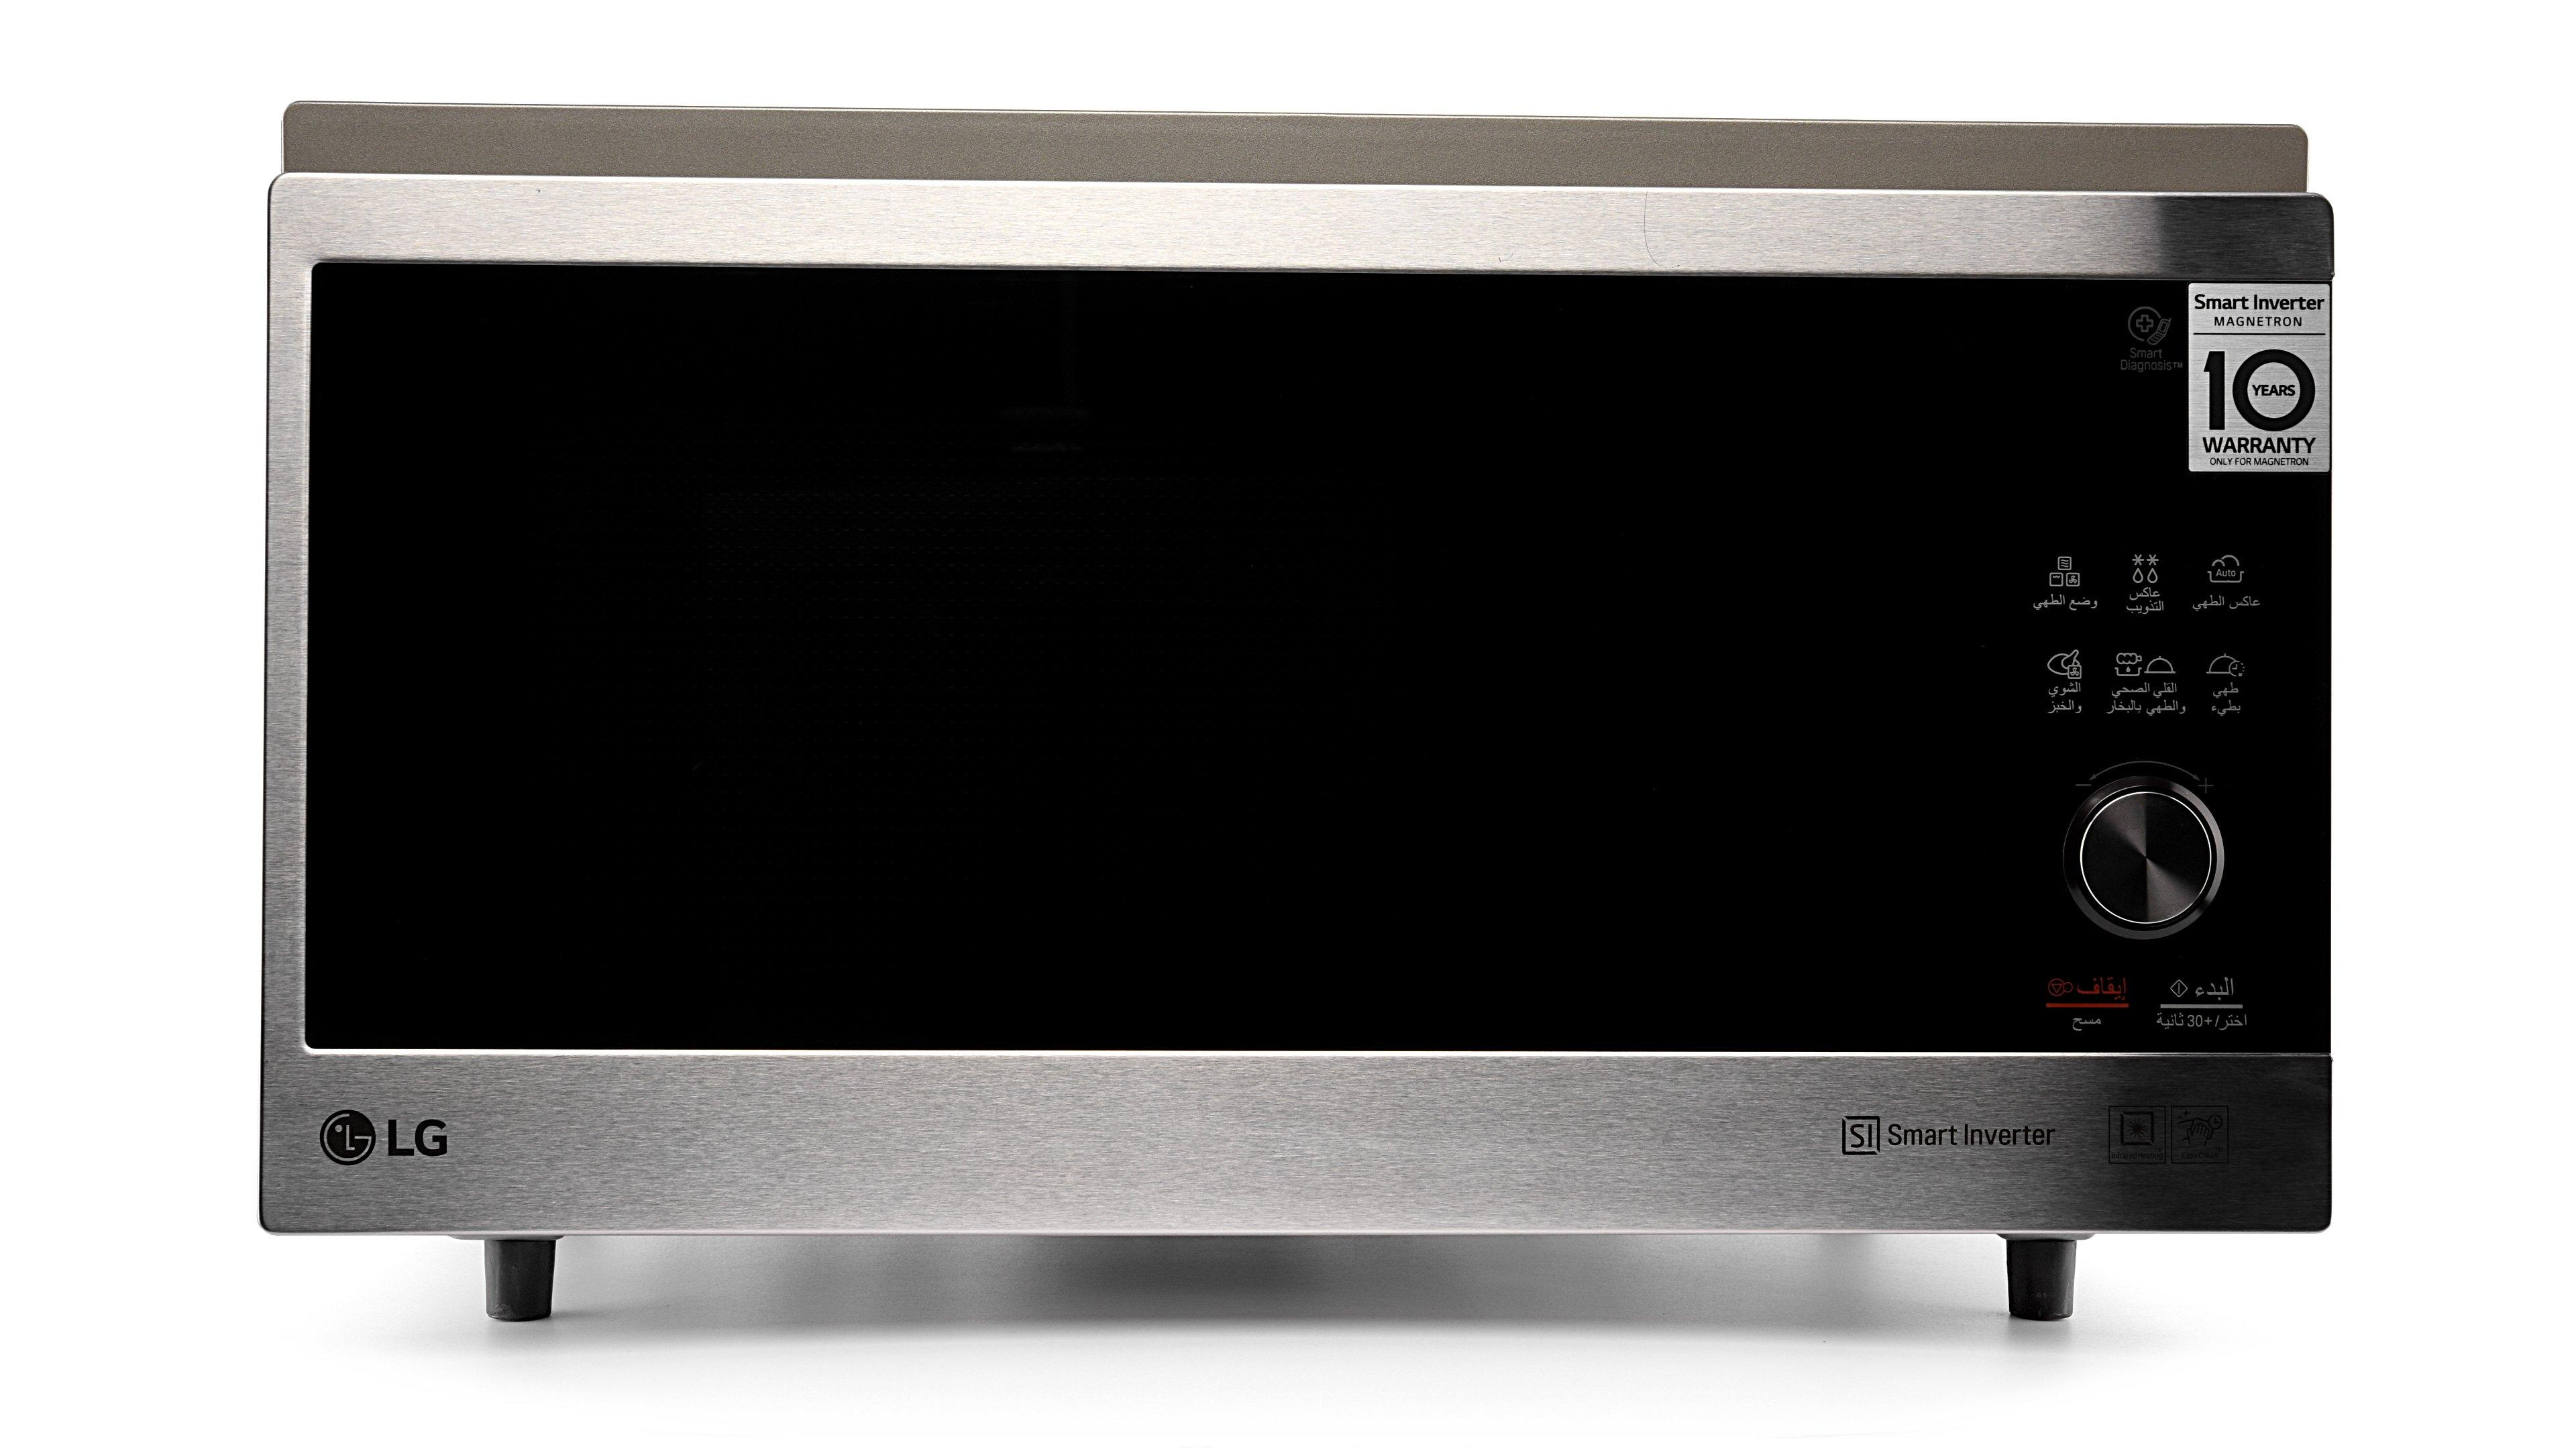 lg microwave convection 39l stainless steel door sts black healthy fry